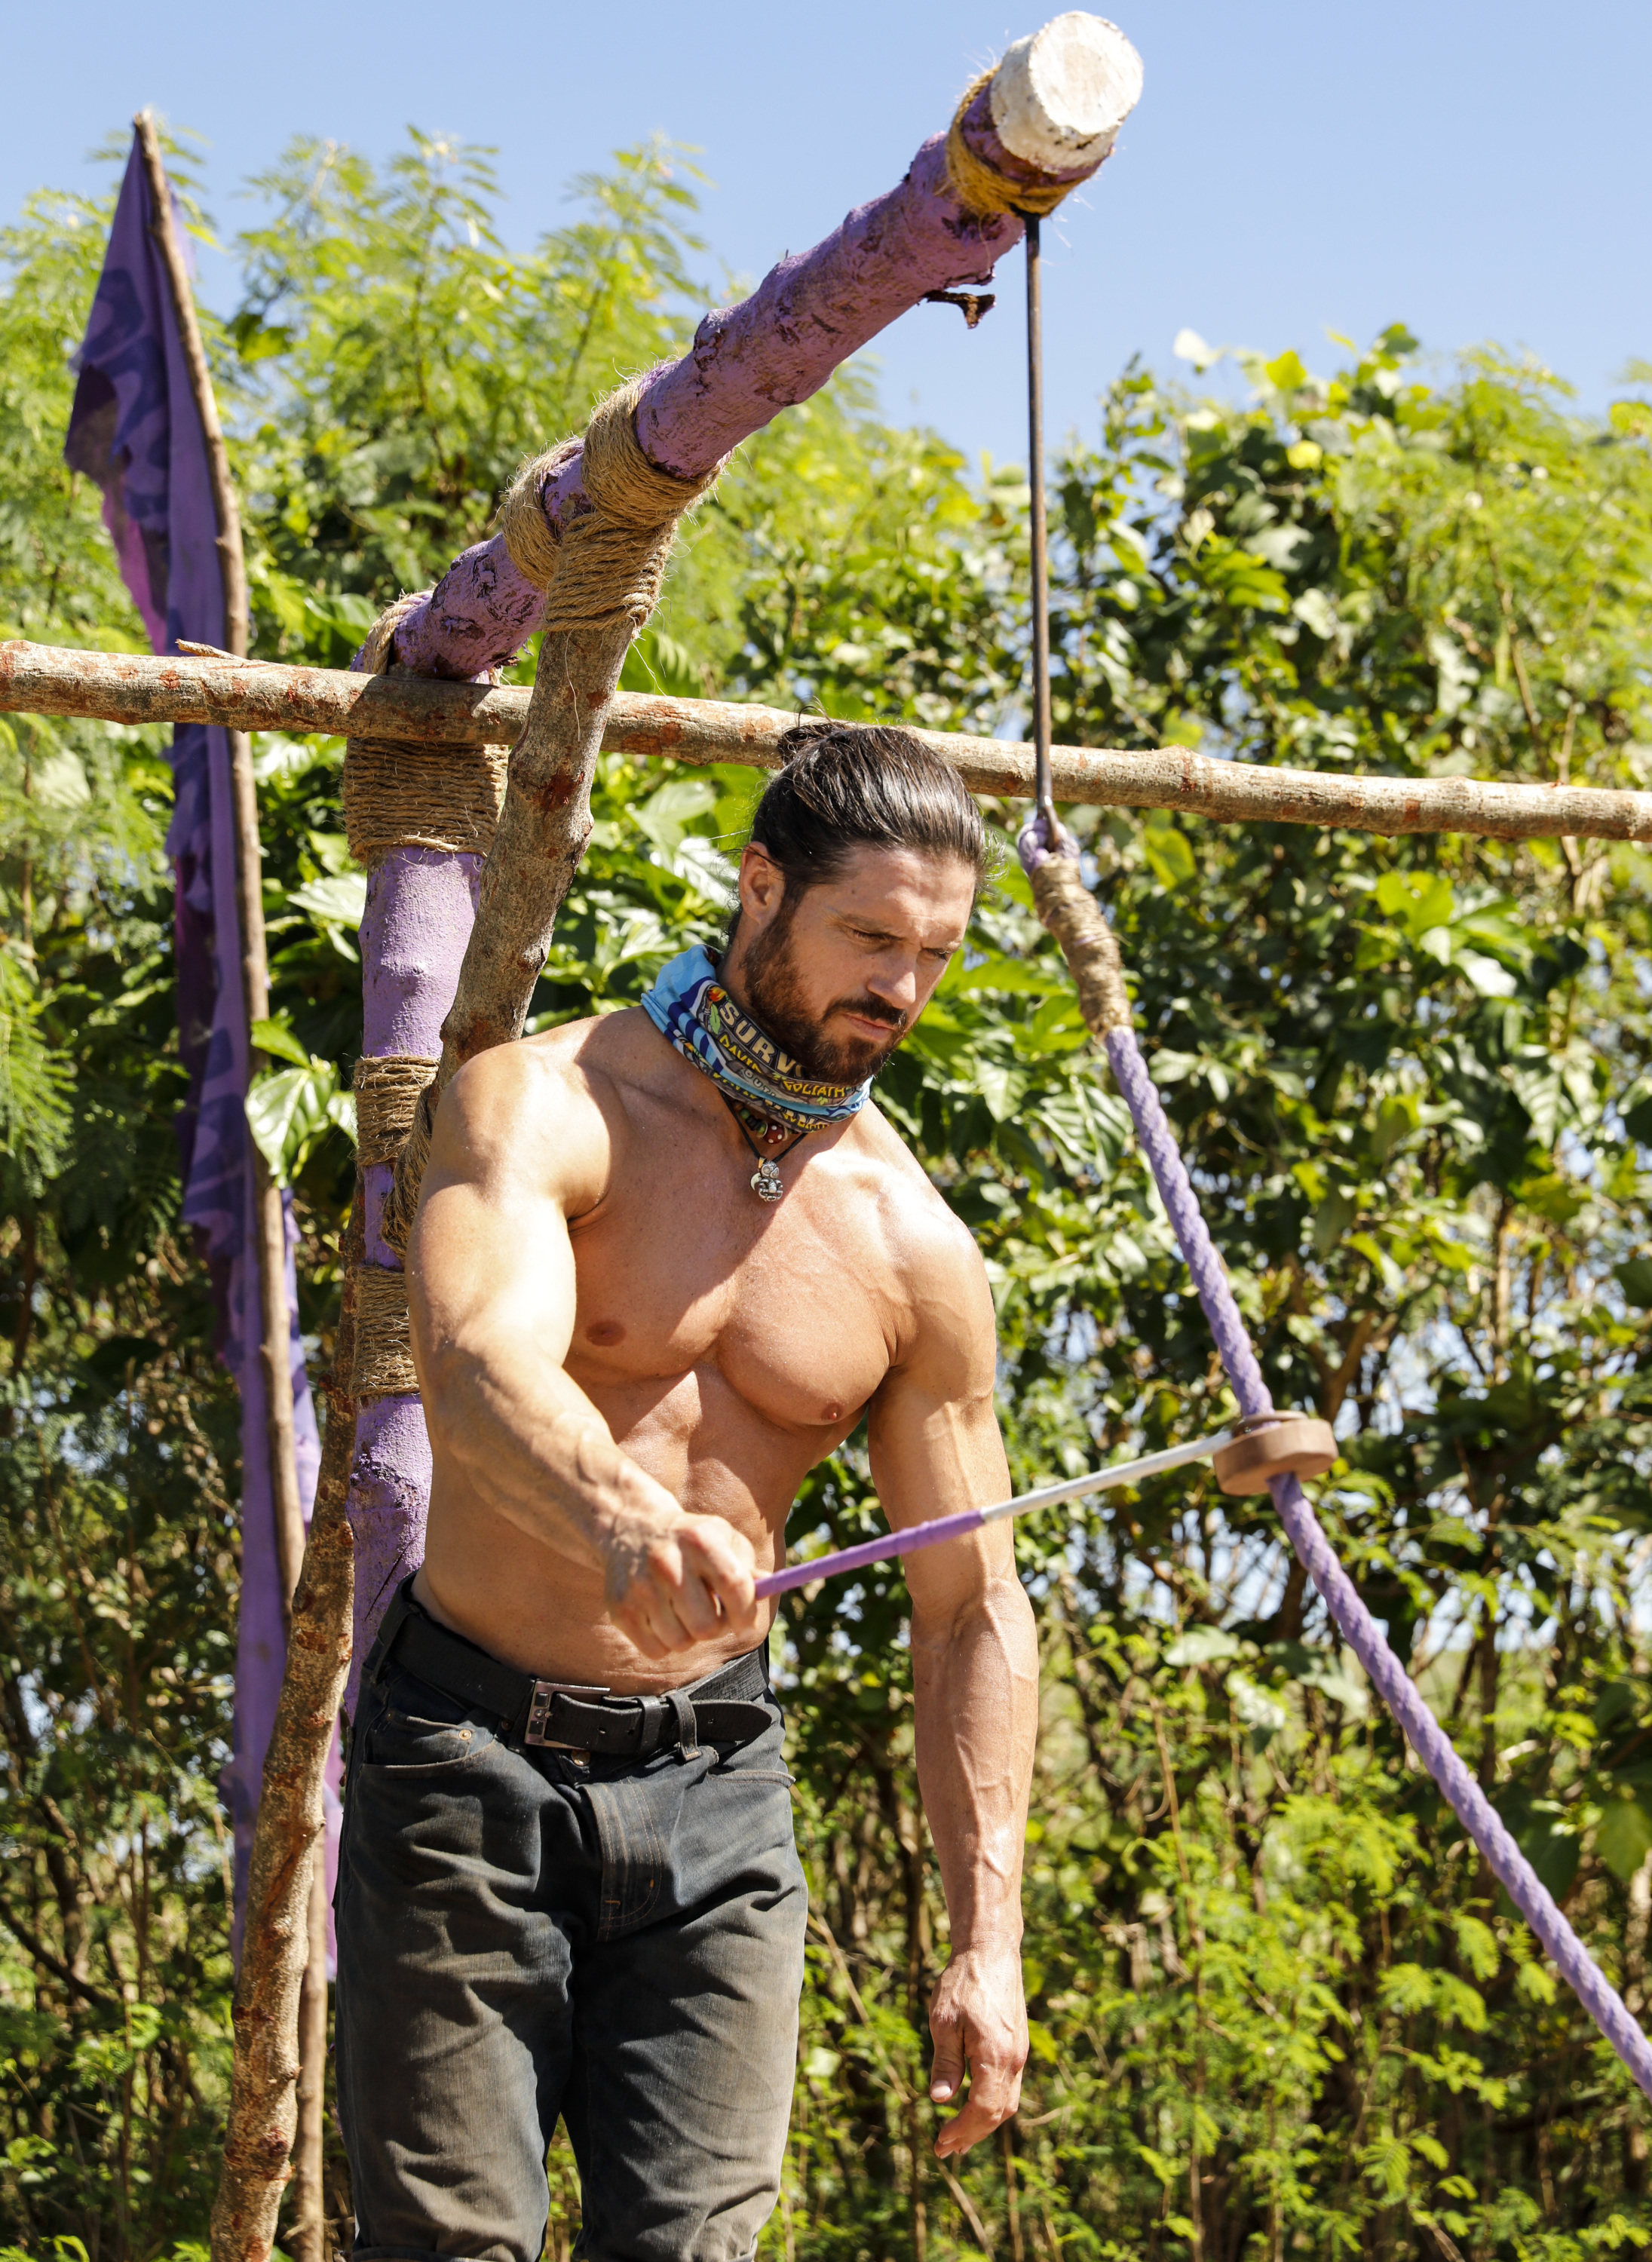 John Hennigan competes in challenge on Survivor: David vs. Goliath